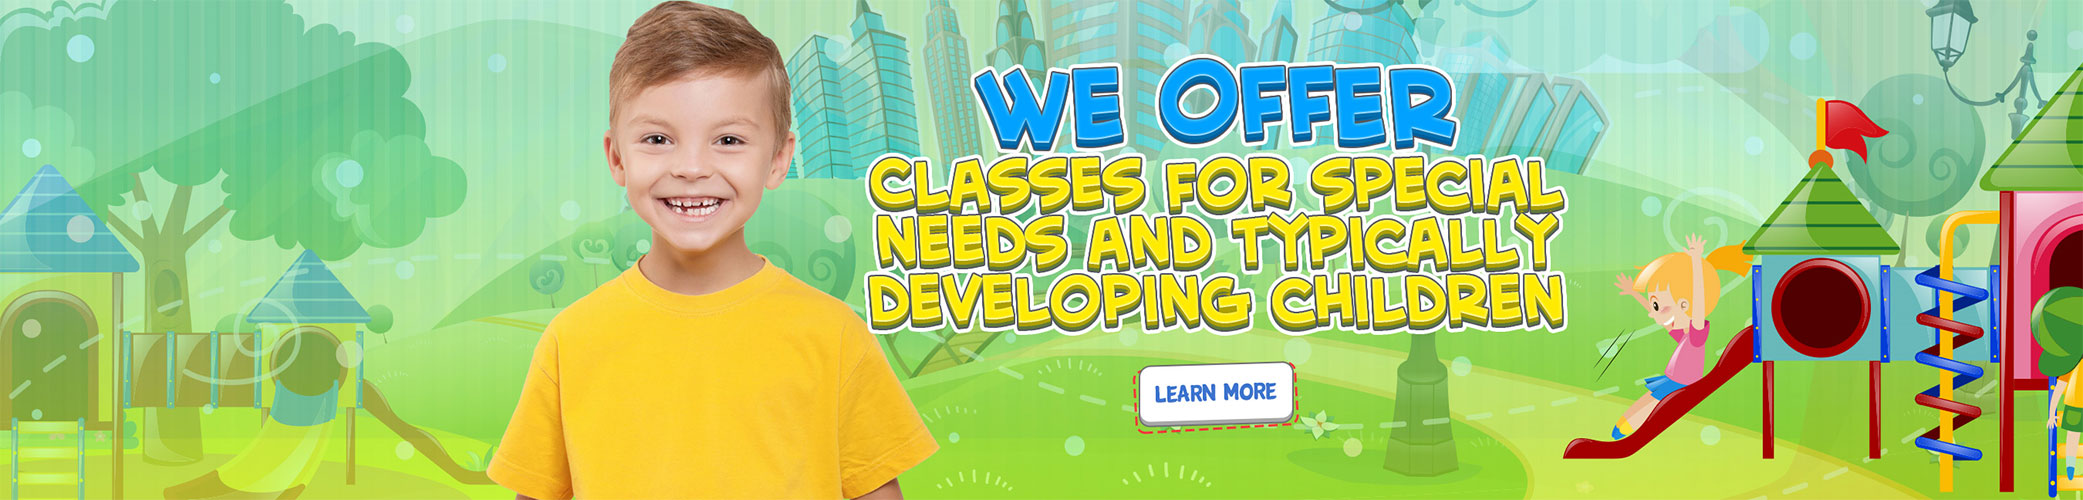 WRTS Edwardsville/ Special Needs/ Classes